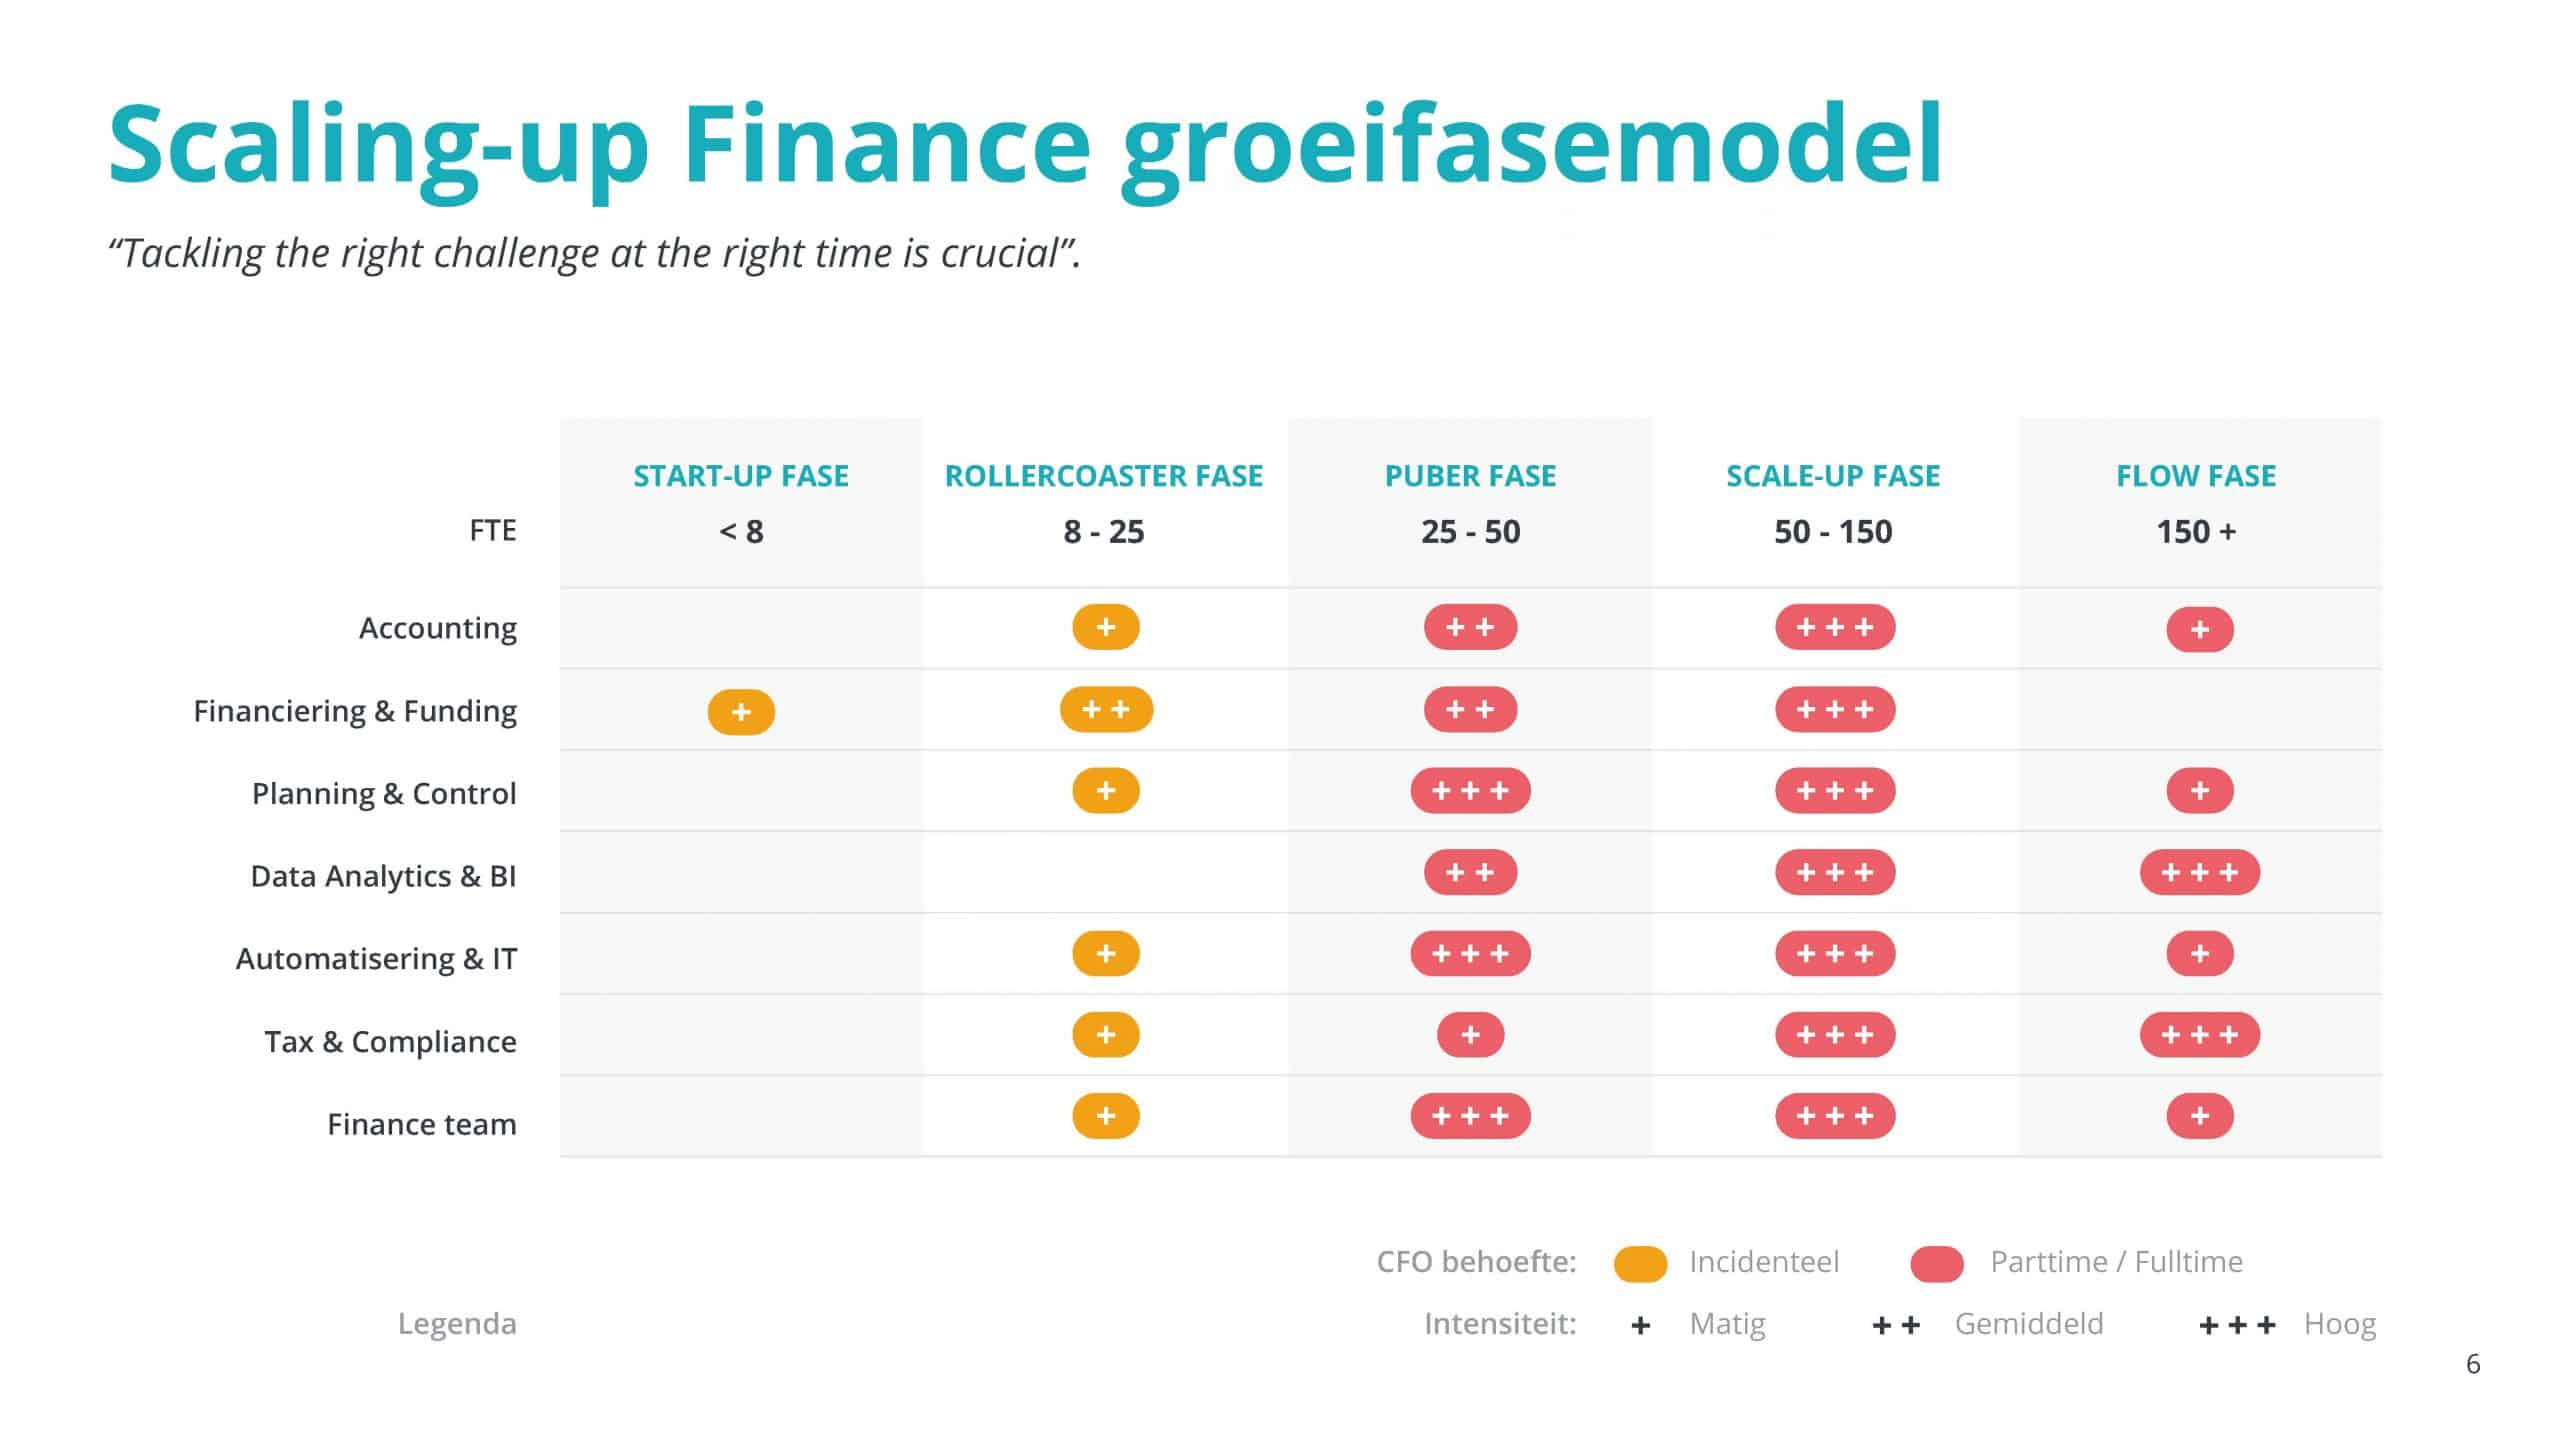 Whitepaper scaling-up finance